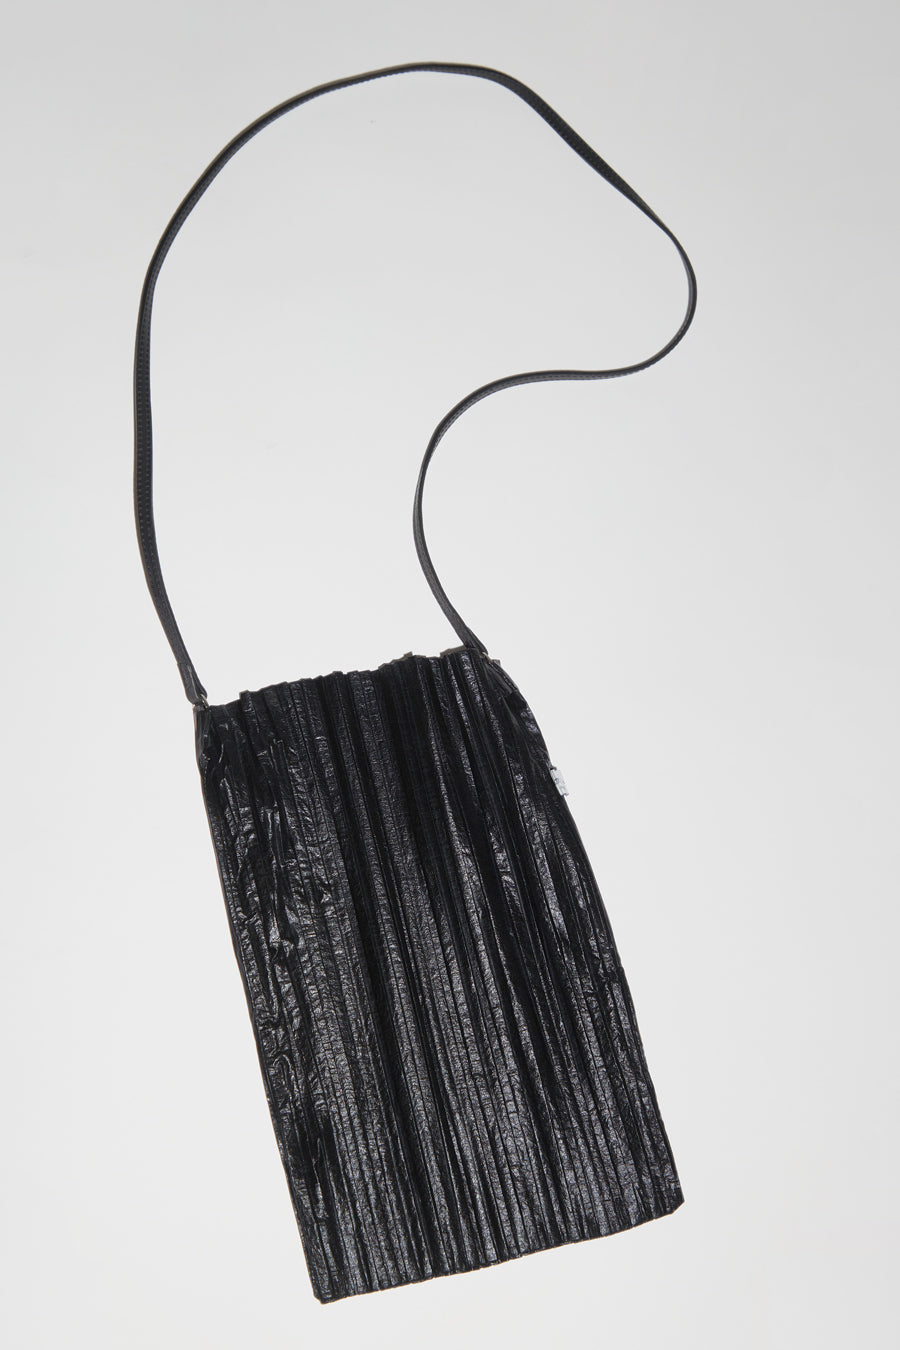 Maria La Rosa Plisse Bag in Black